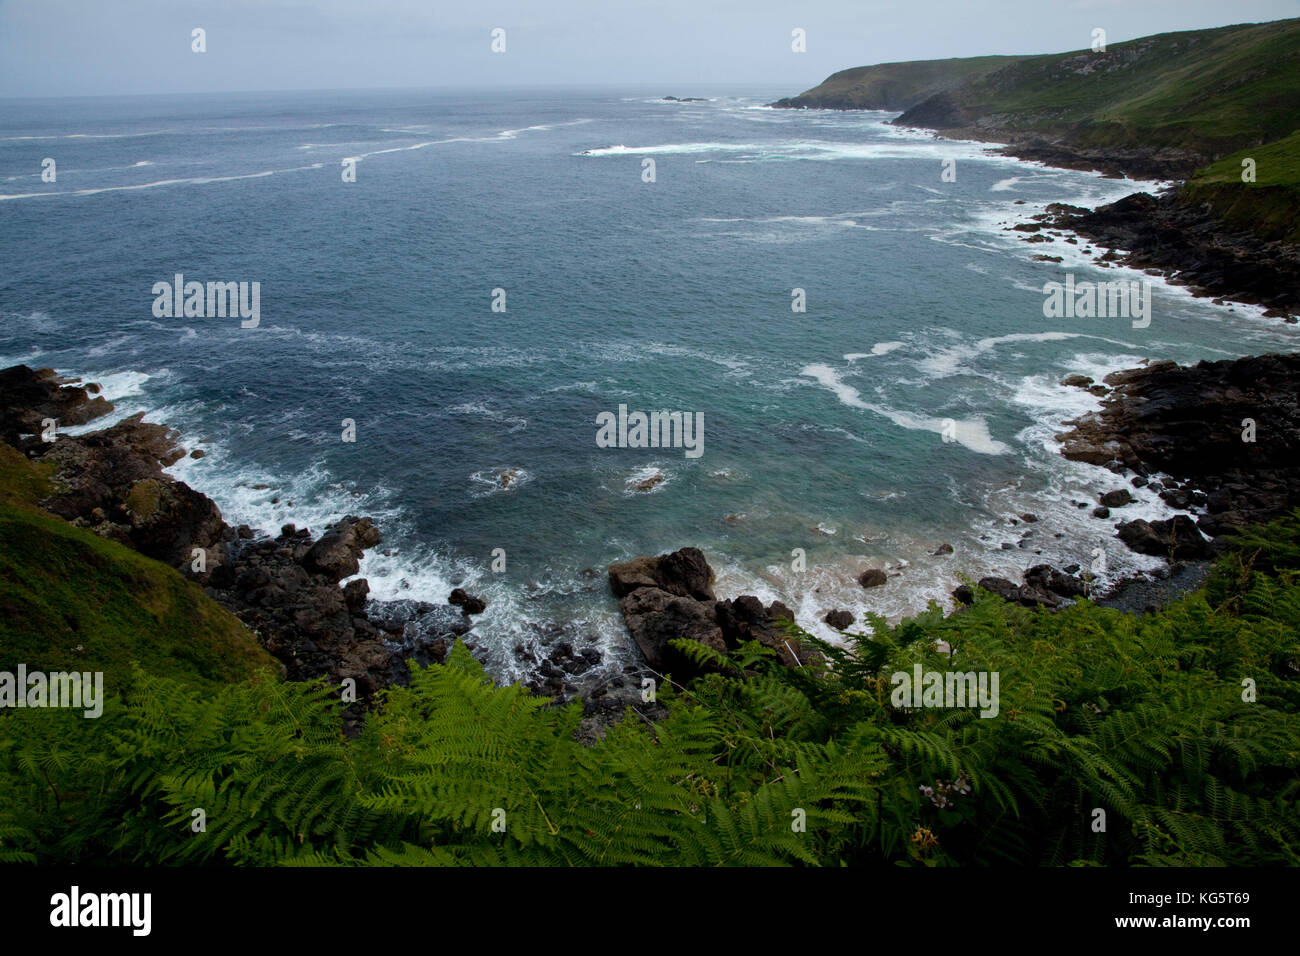 A view from the National South West Coastal Path above Zennor, Cornwall, England. - Stock Image